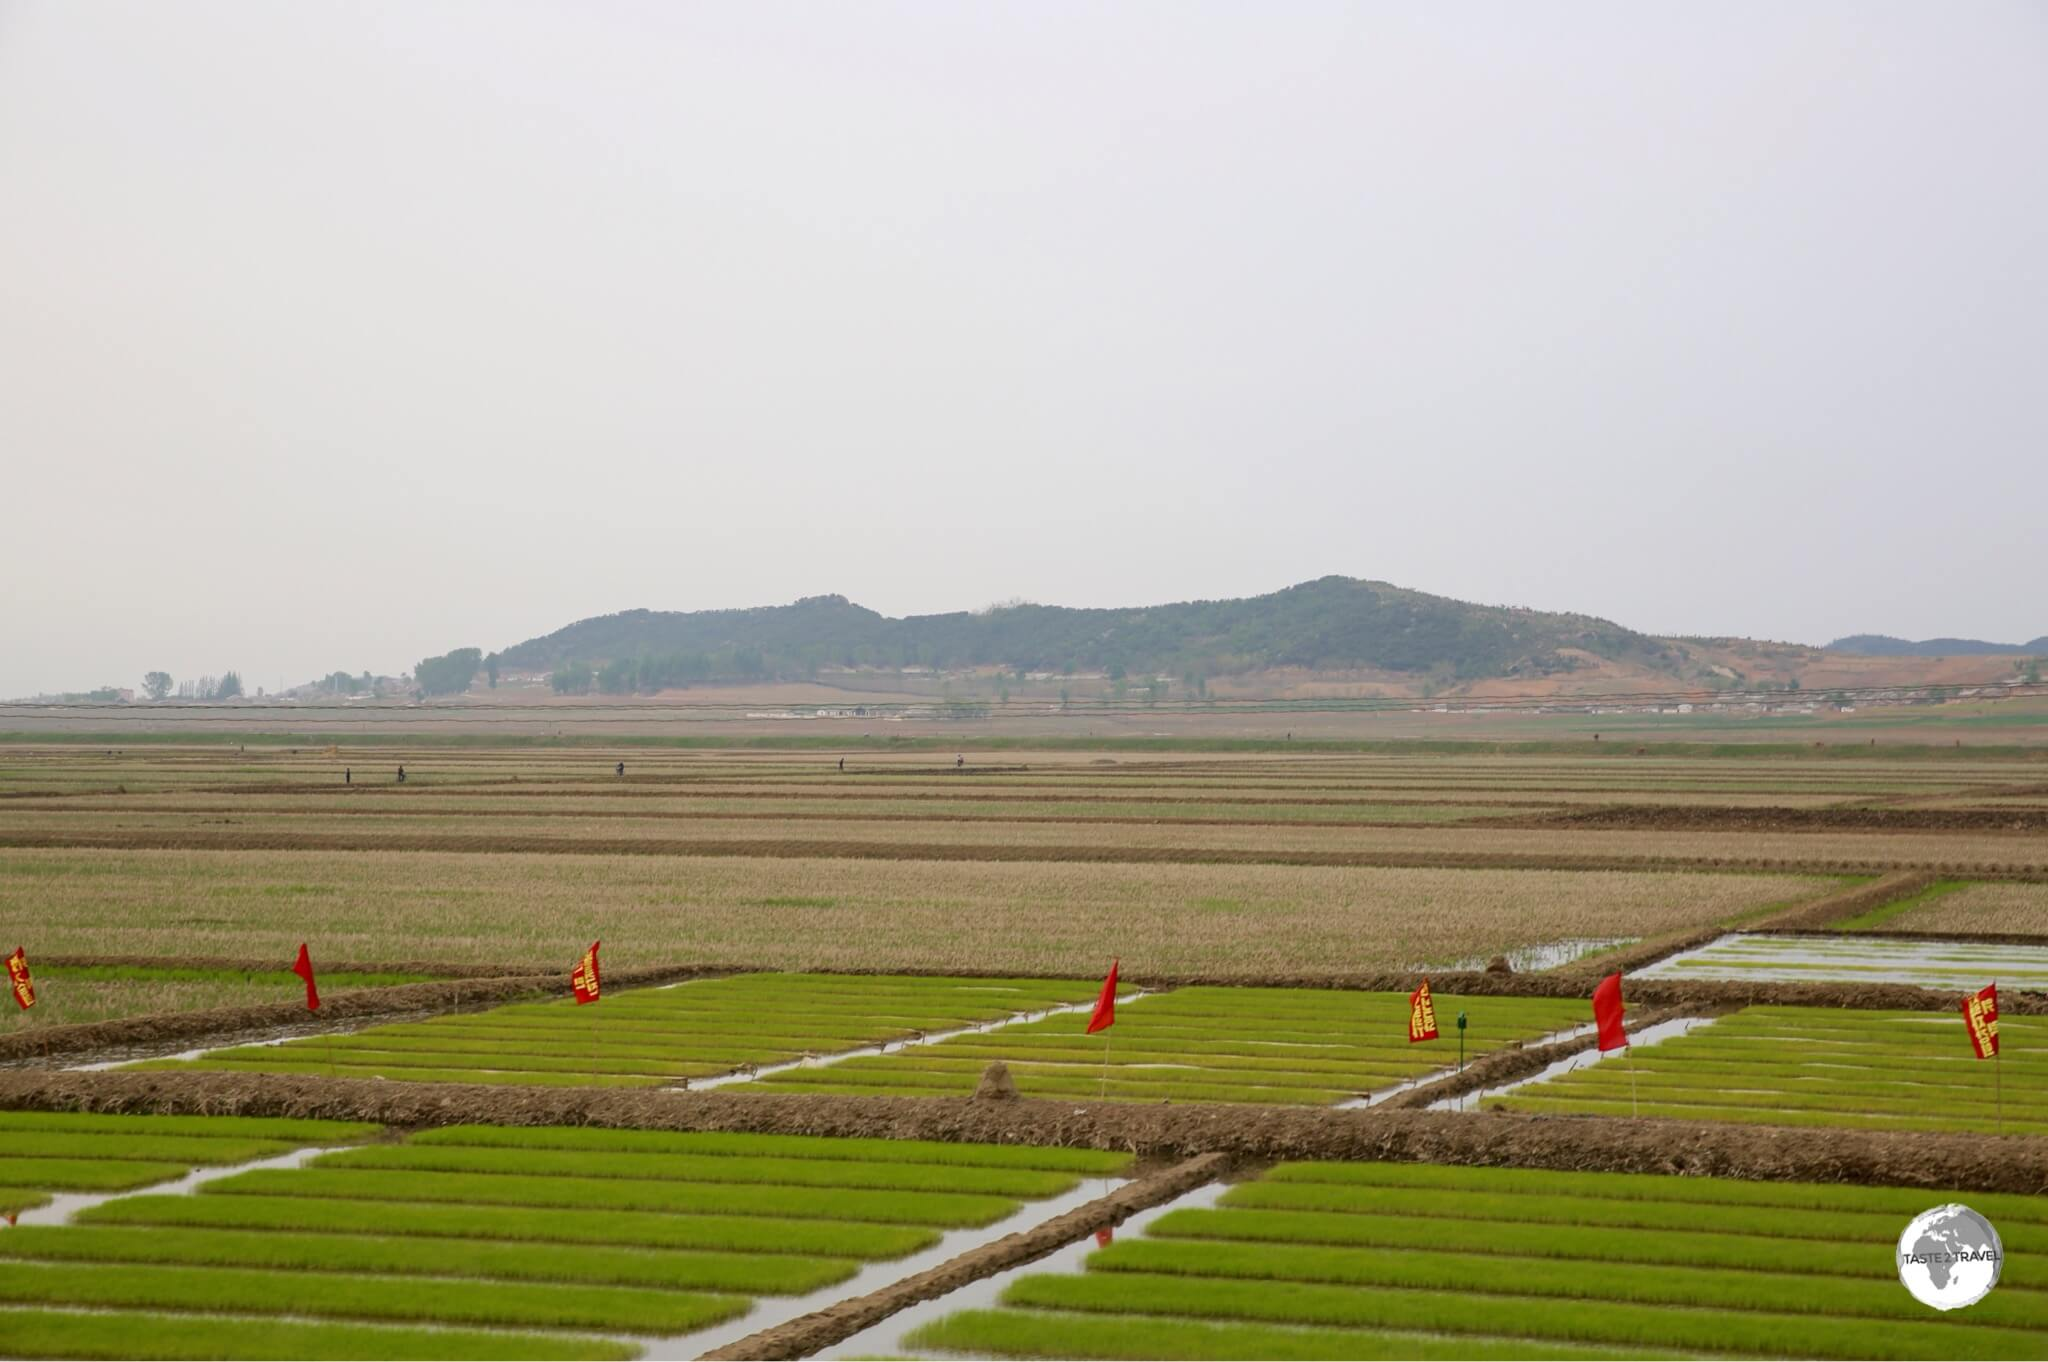 Rice seedlings being harvested near Nampo. All arable land is intensely farmed – mostly by hand.